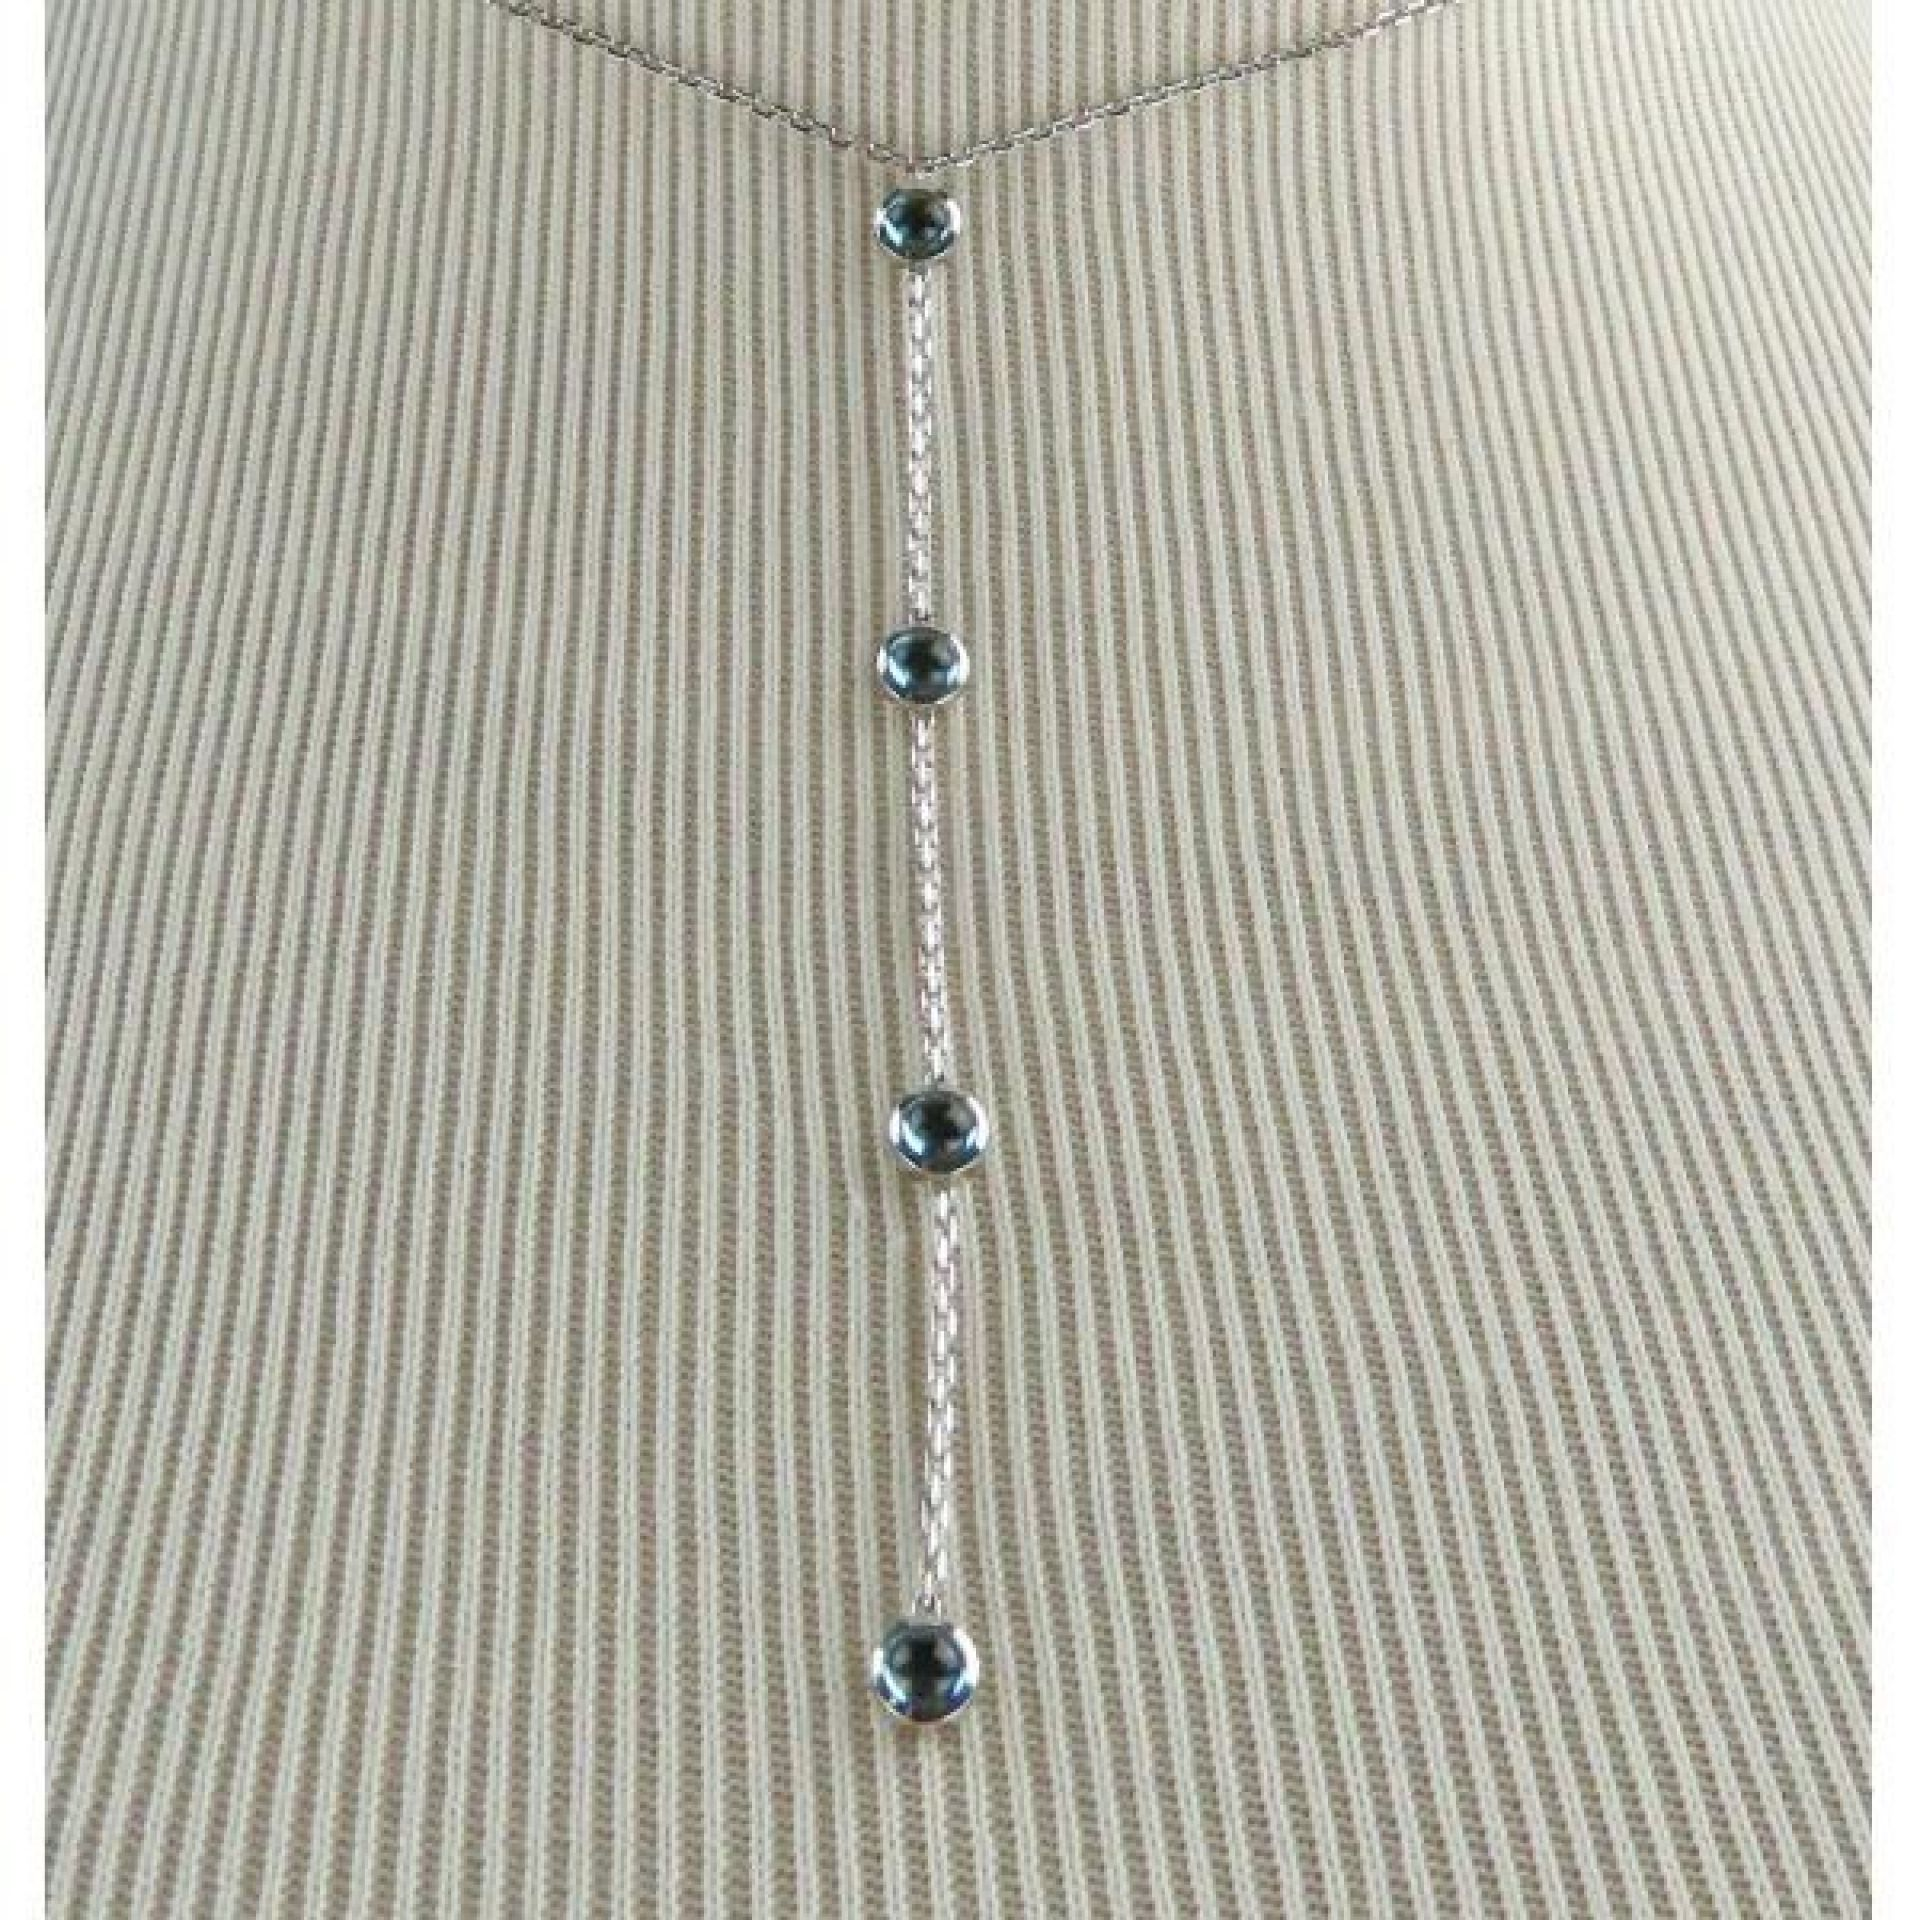 Gucci 18K White Gold Blue Topaz Lariat Necklace